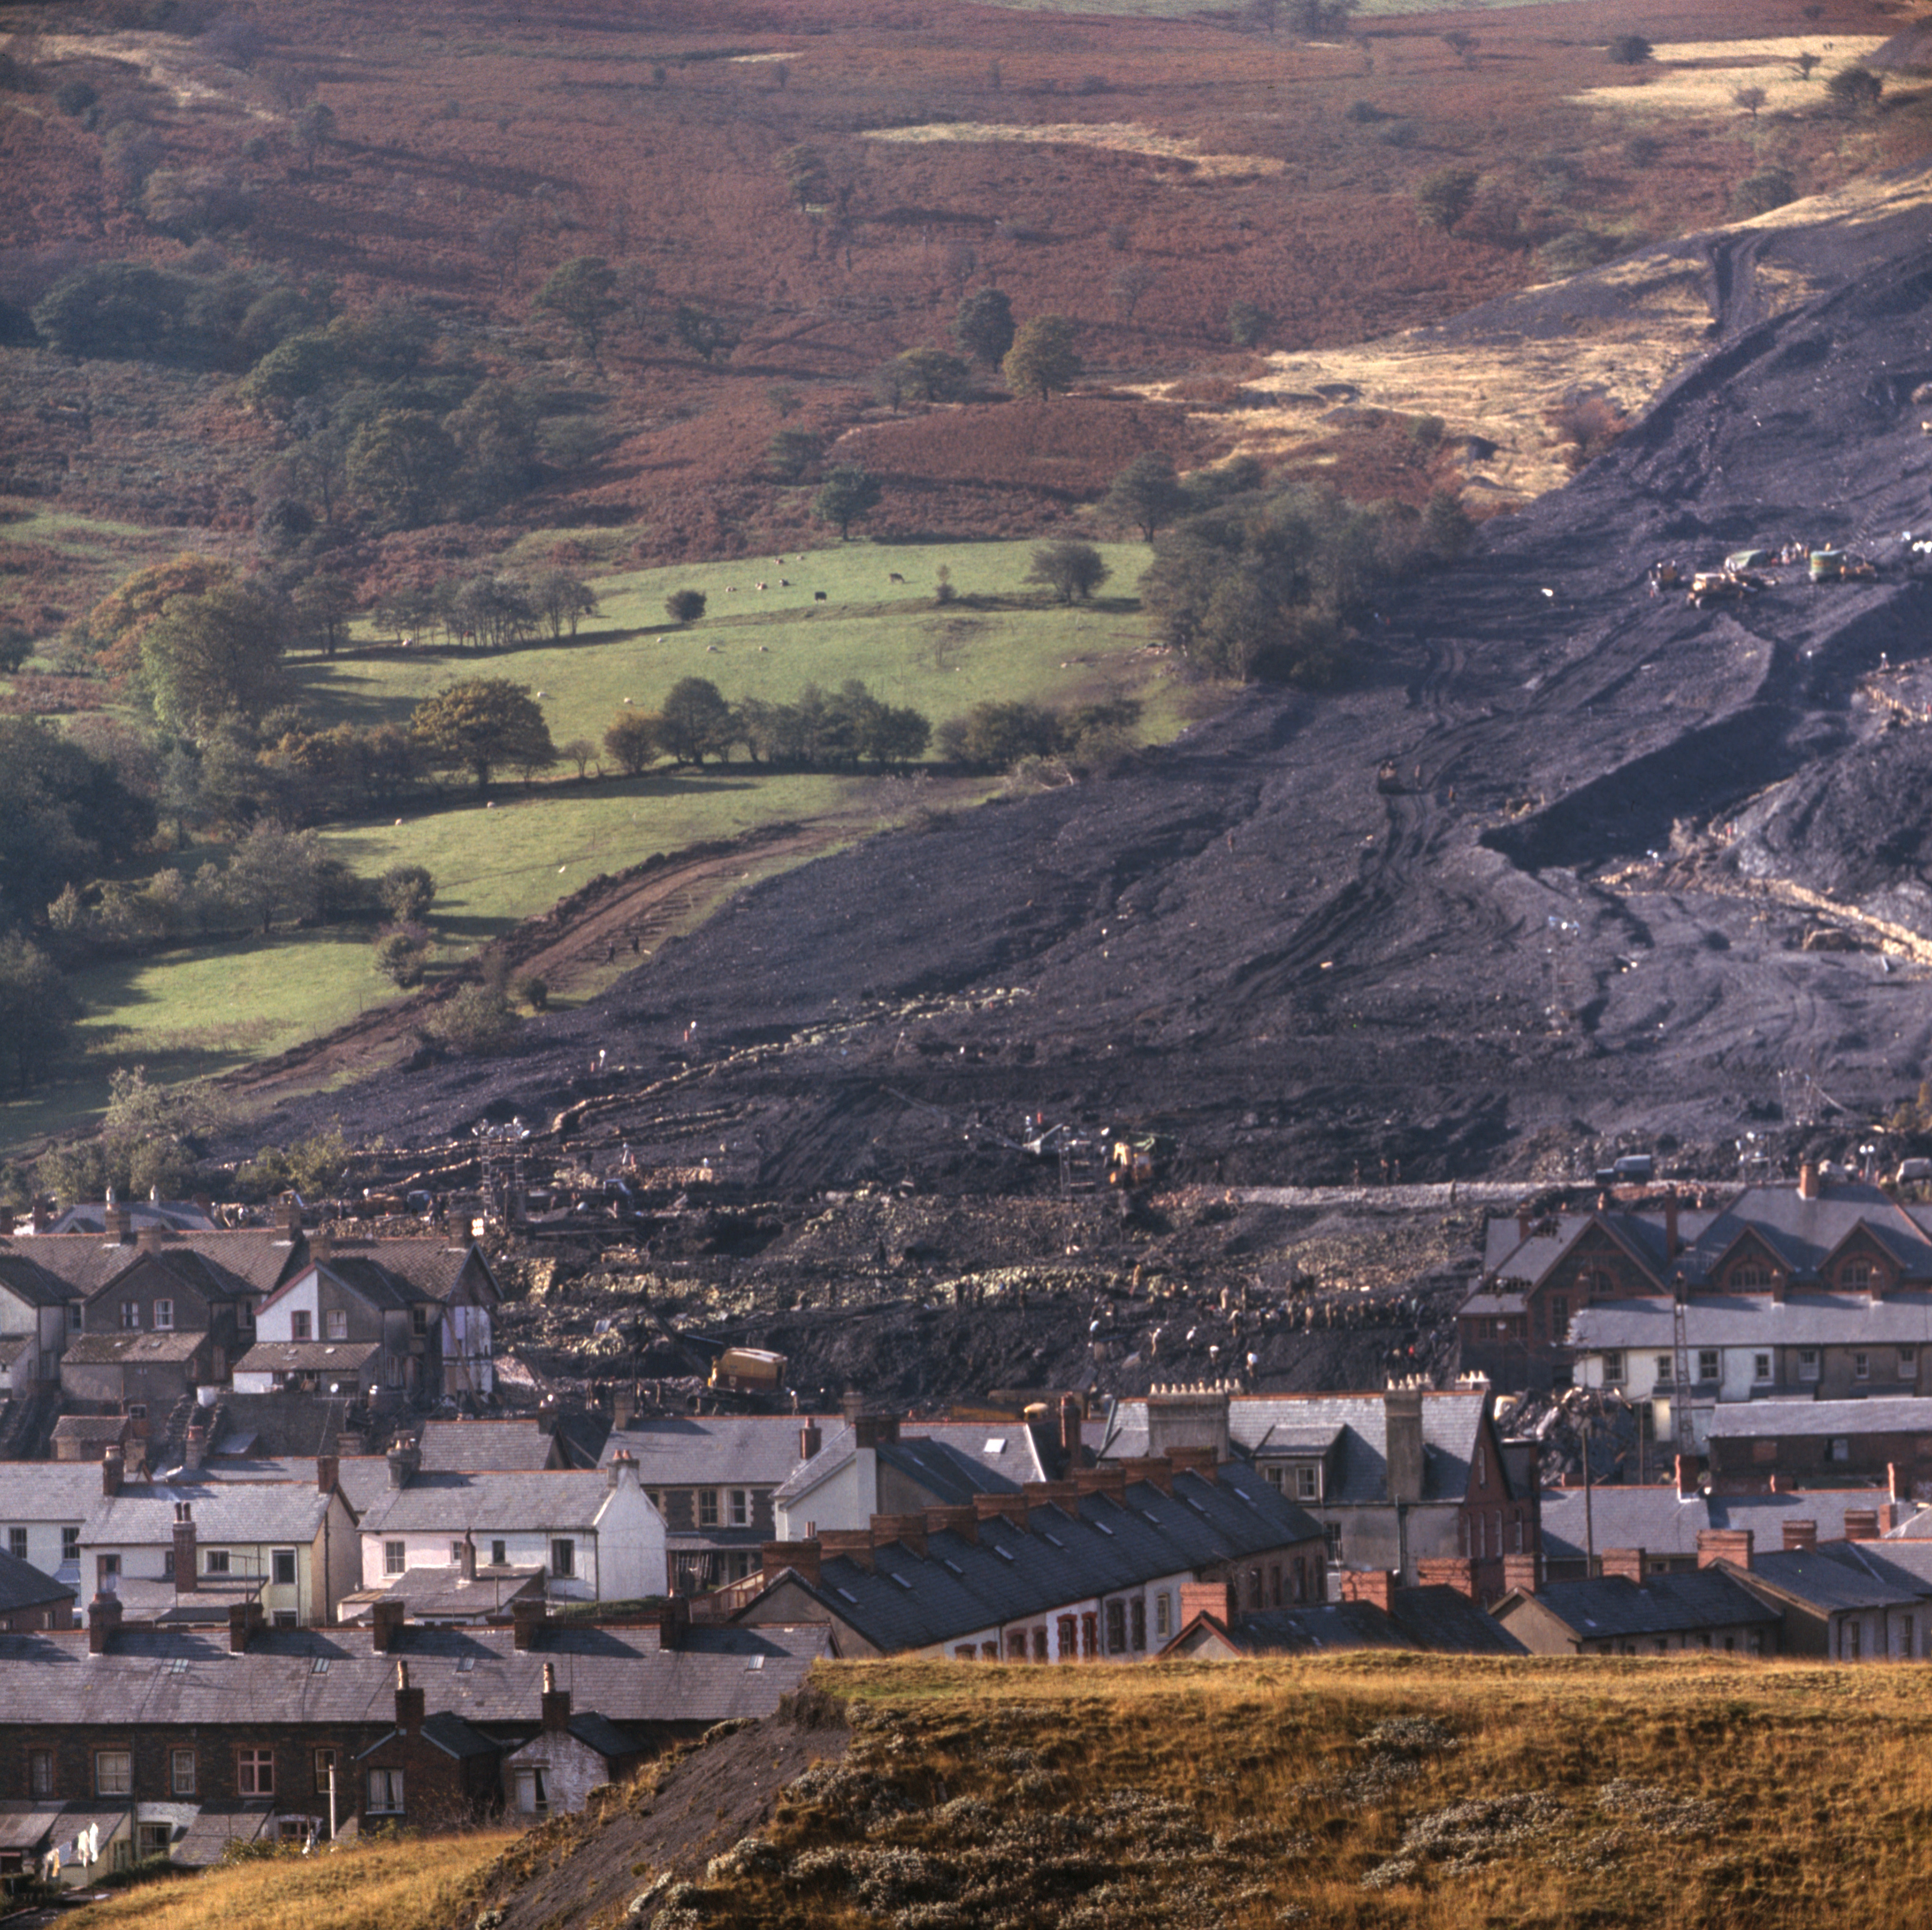 newschainonline.com - The Newsroom - UK Government urged to help secure Wales's coal tips to avoid future disasters